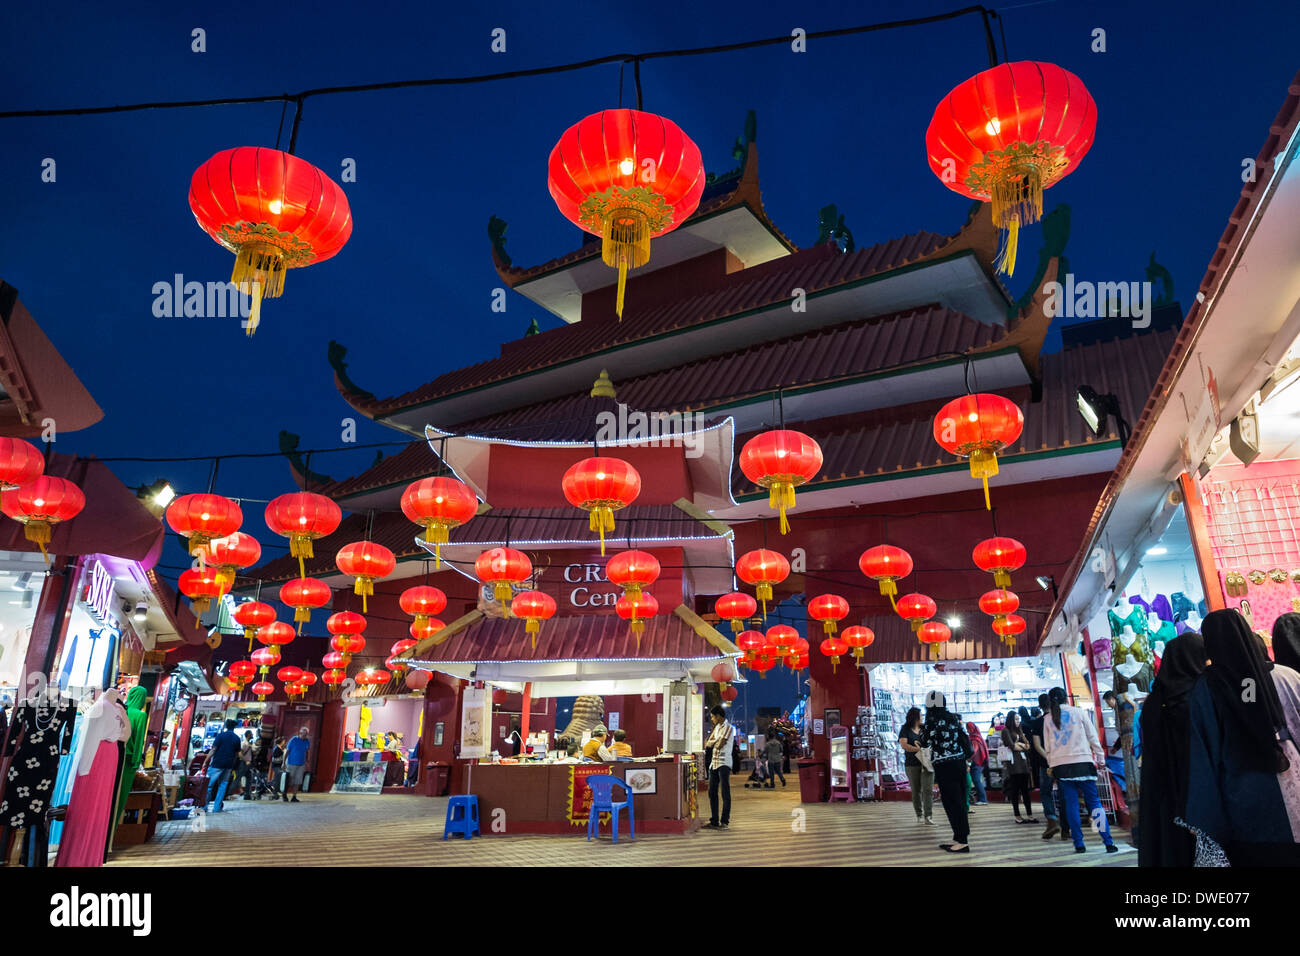 The Chinese Pavilion and shopping arcade at Global Village tourist cultural attraction in Dubai United Arab Emirates - Stock Image